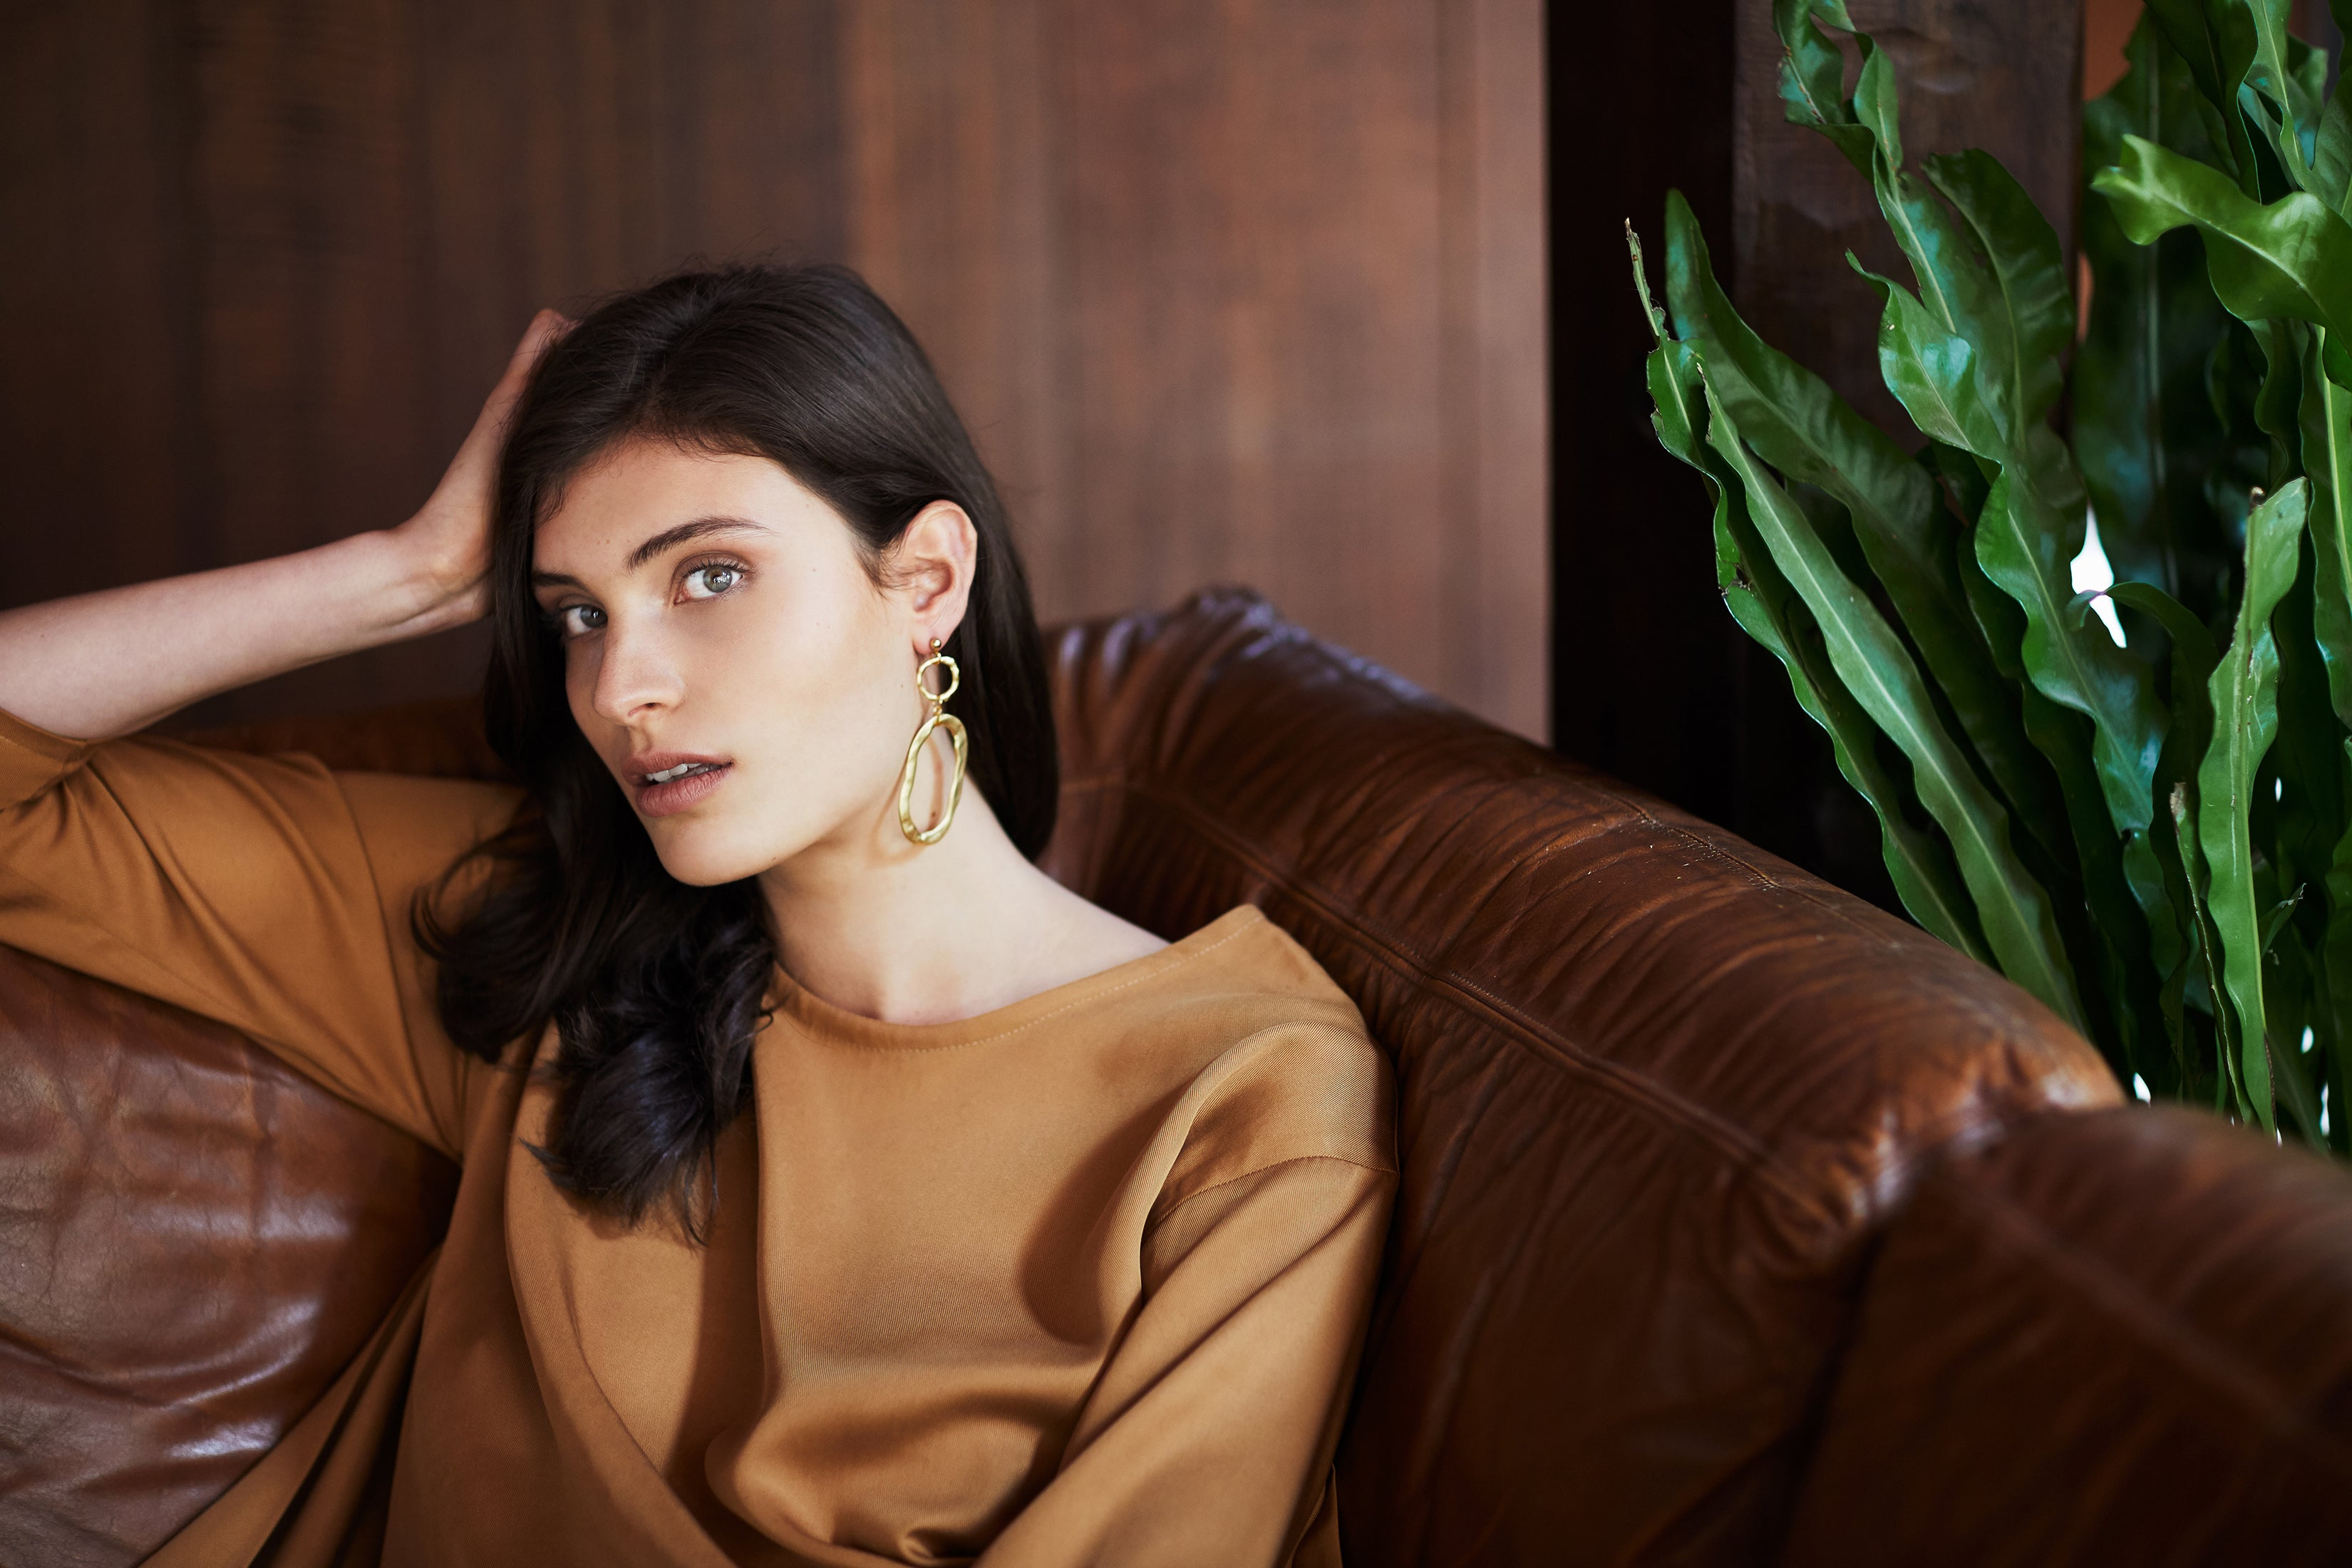 keegan AW19 Woodland Campaign Ethical Fashion Made in Melbourne Australia Mustard Top on Sofa